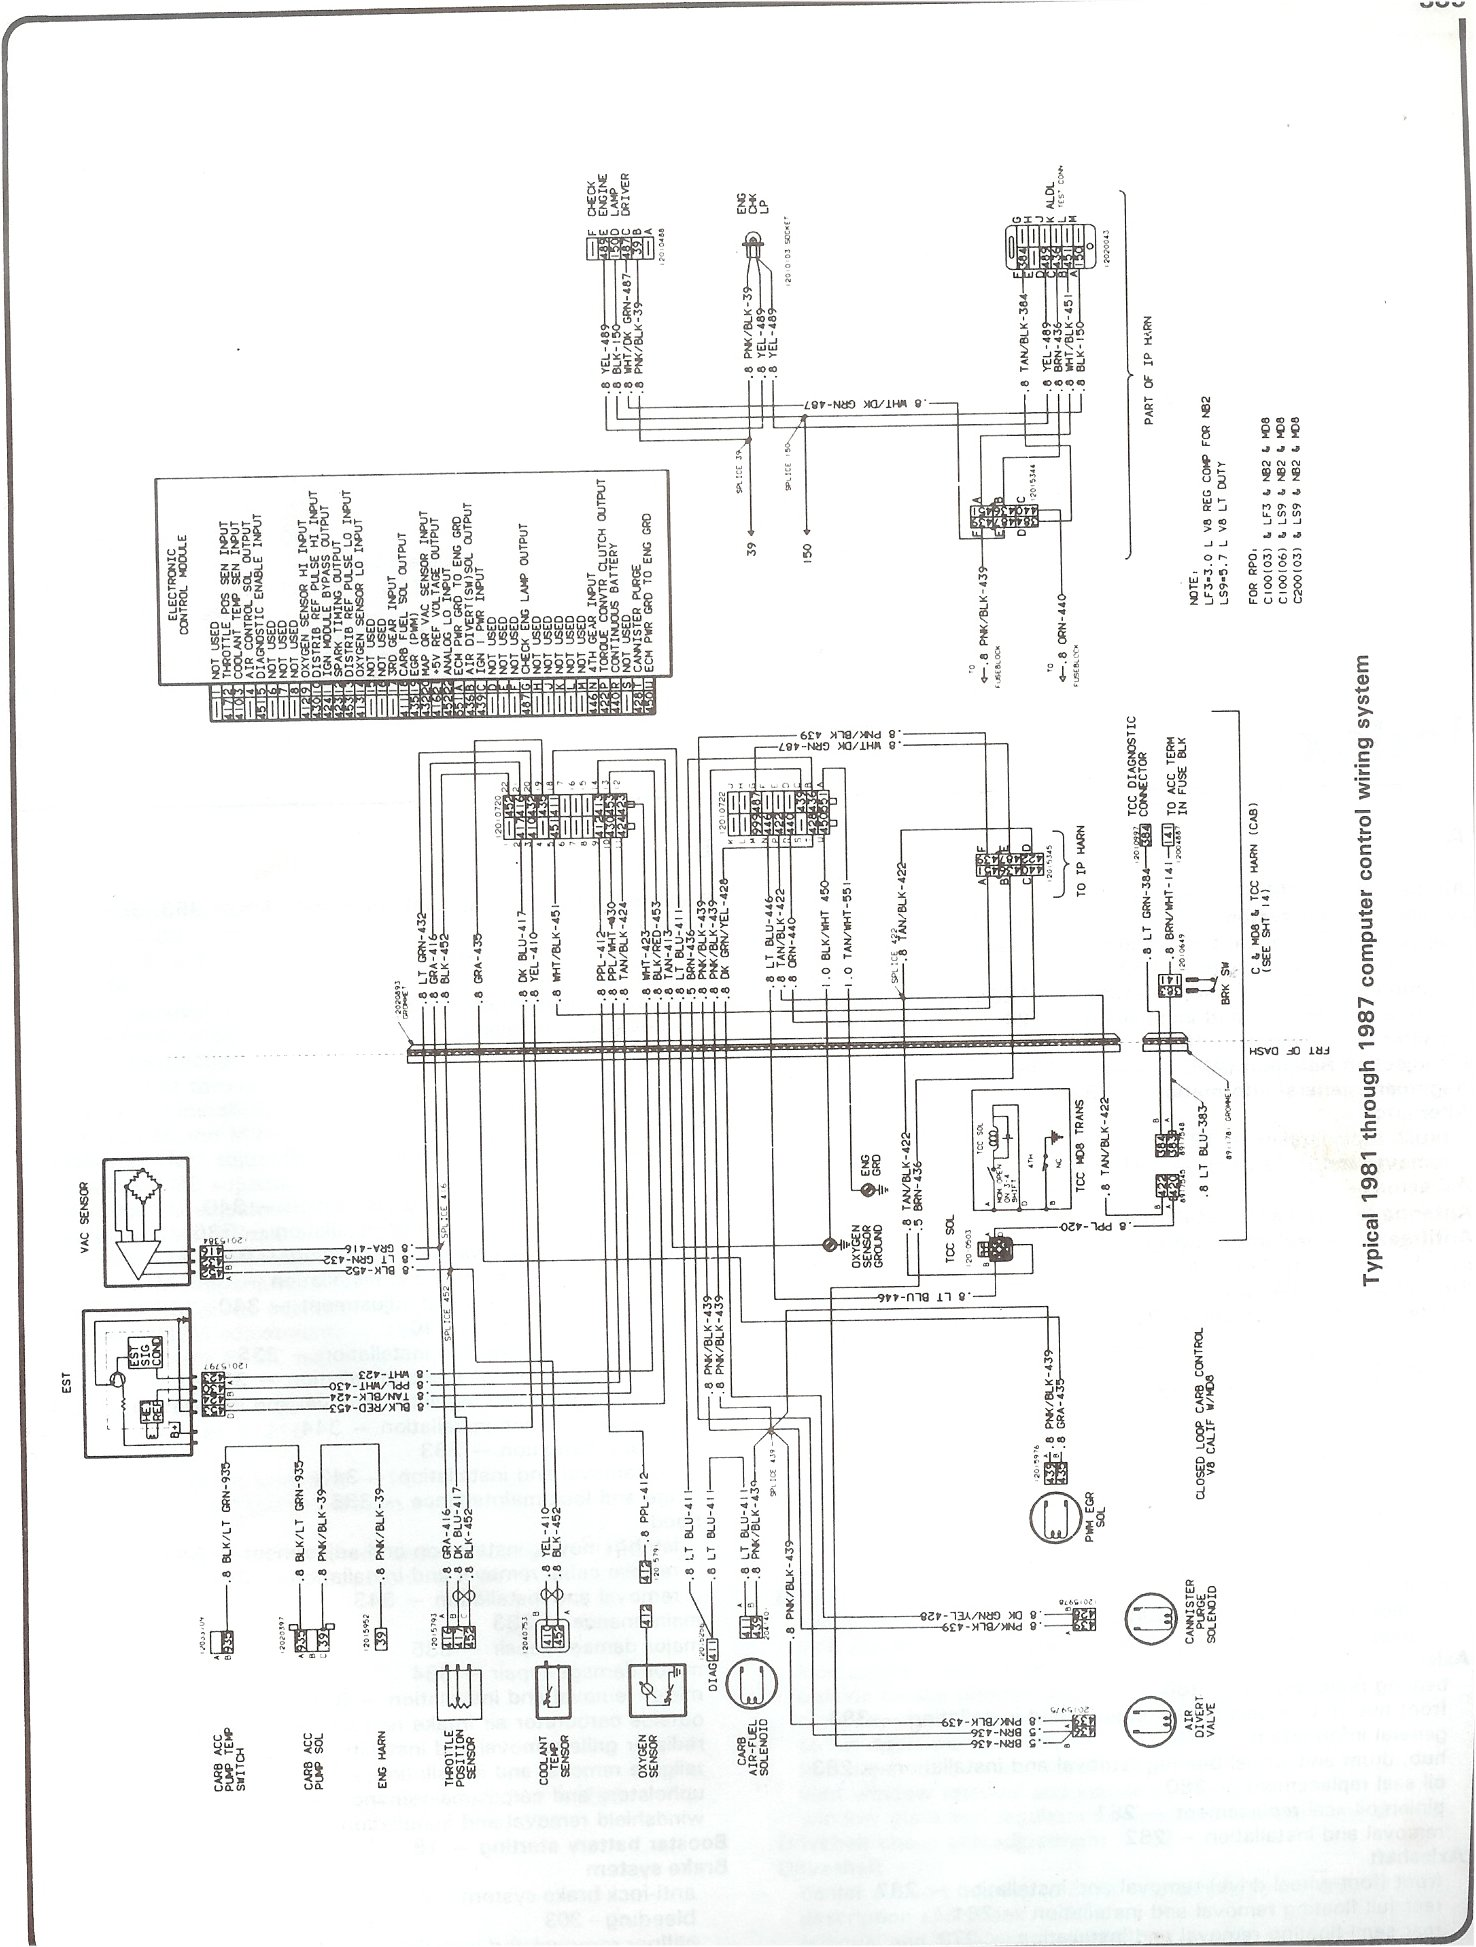 81 87_computer_control_wiring complete 73 87 wiring diagrams chevy wiring harness at mifinder.co